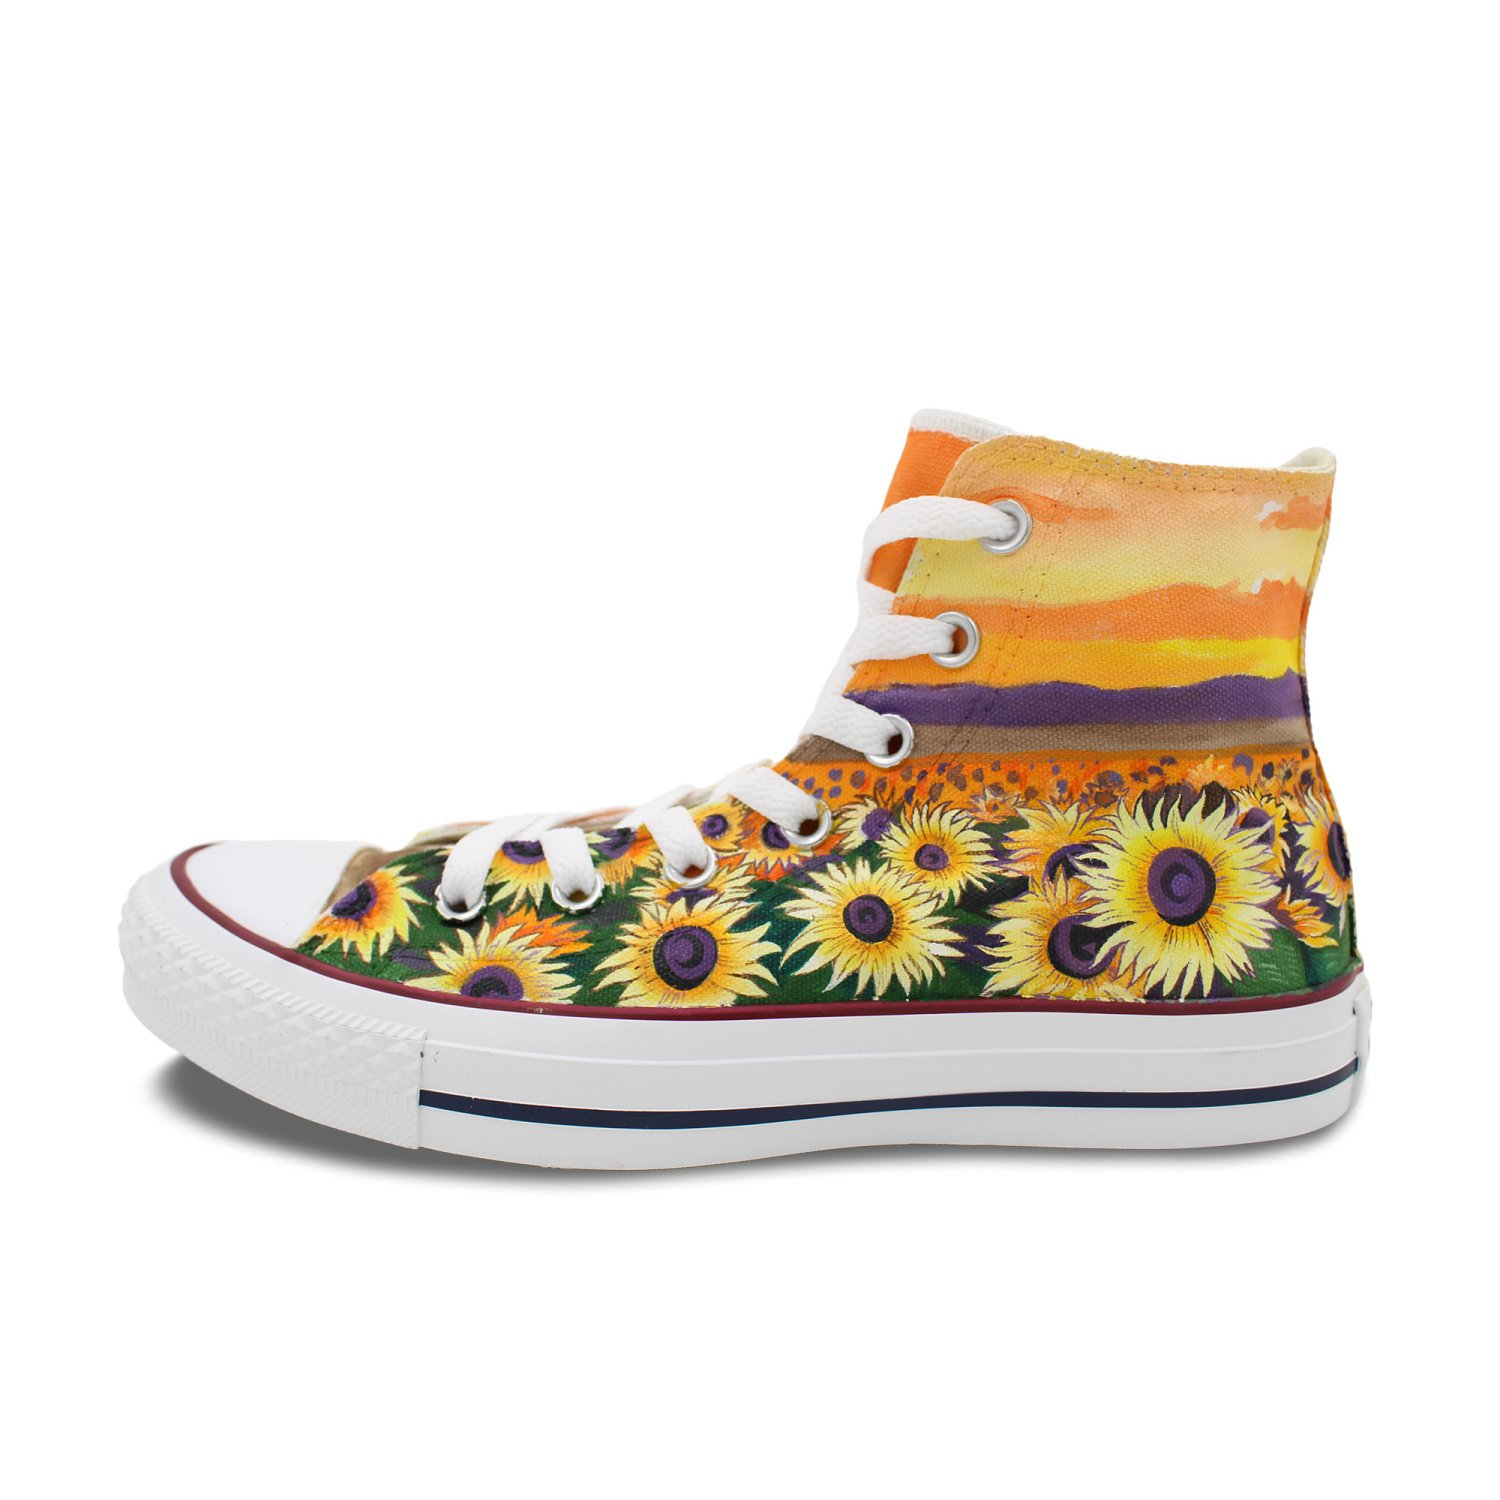 40bbf7751bcba Amazon.com | Wen Hand Painted Shoes Design Sunflower Floral High Top ...